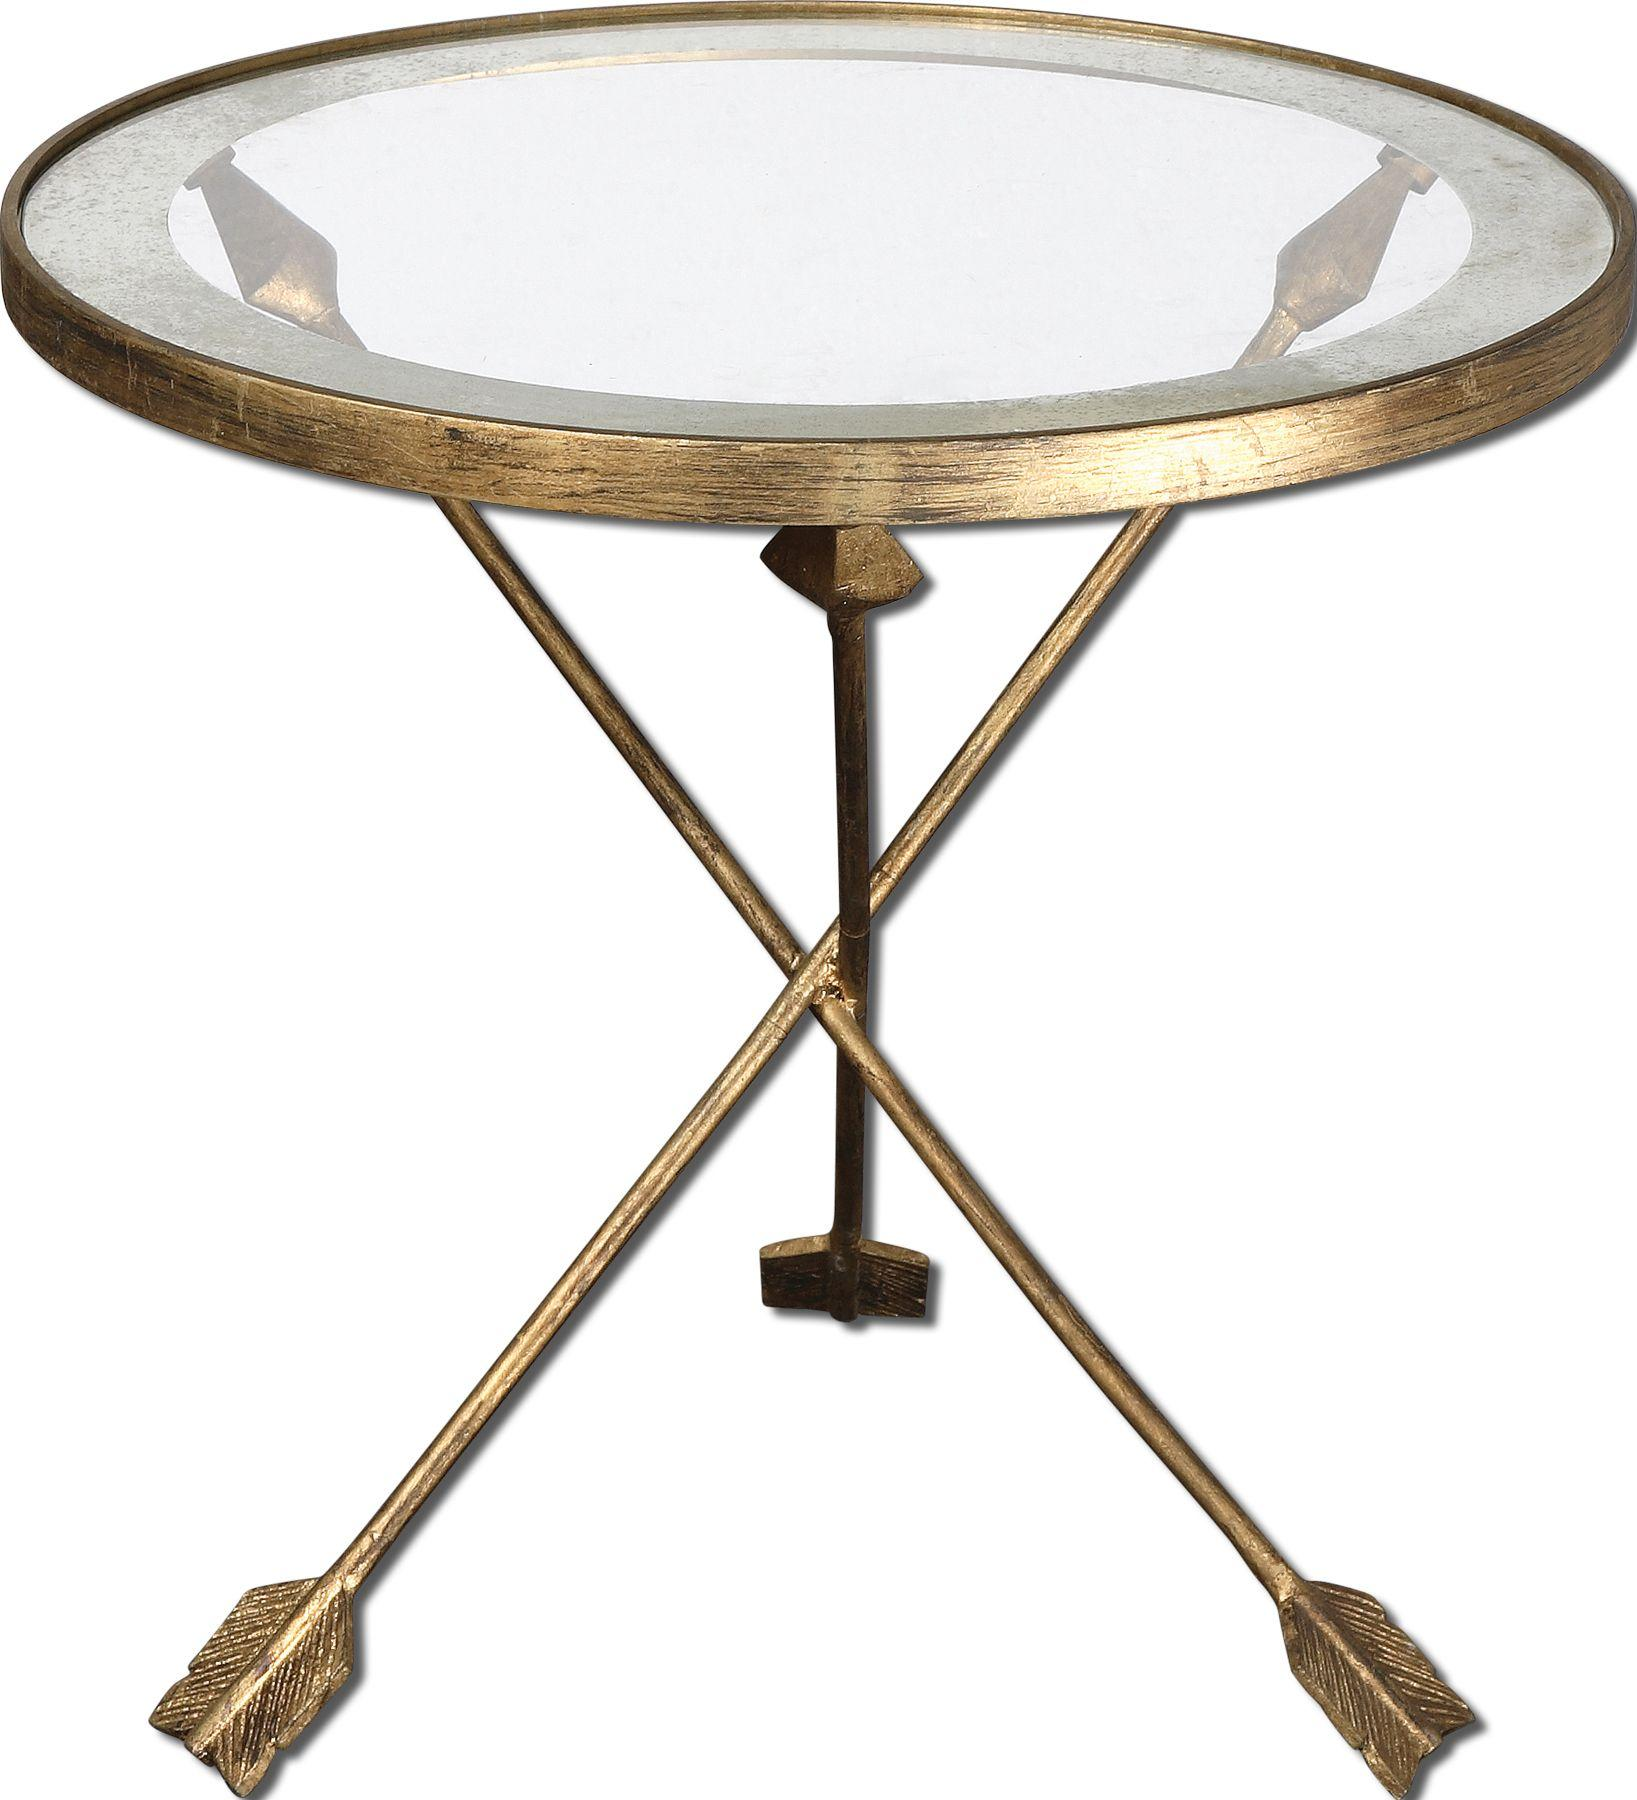 uttermost accent furniture occasional tables aero products color round table west elm free shipping code laton mirrored and end home goods entryway bench beverage cooler side